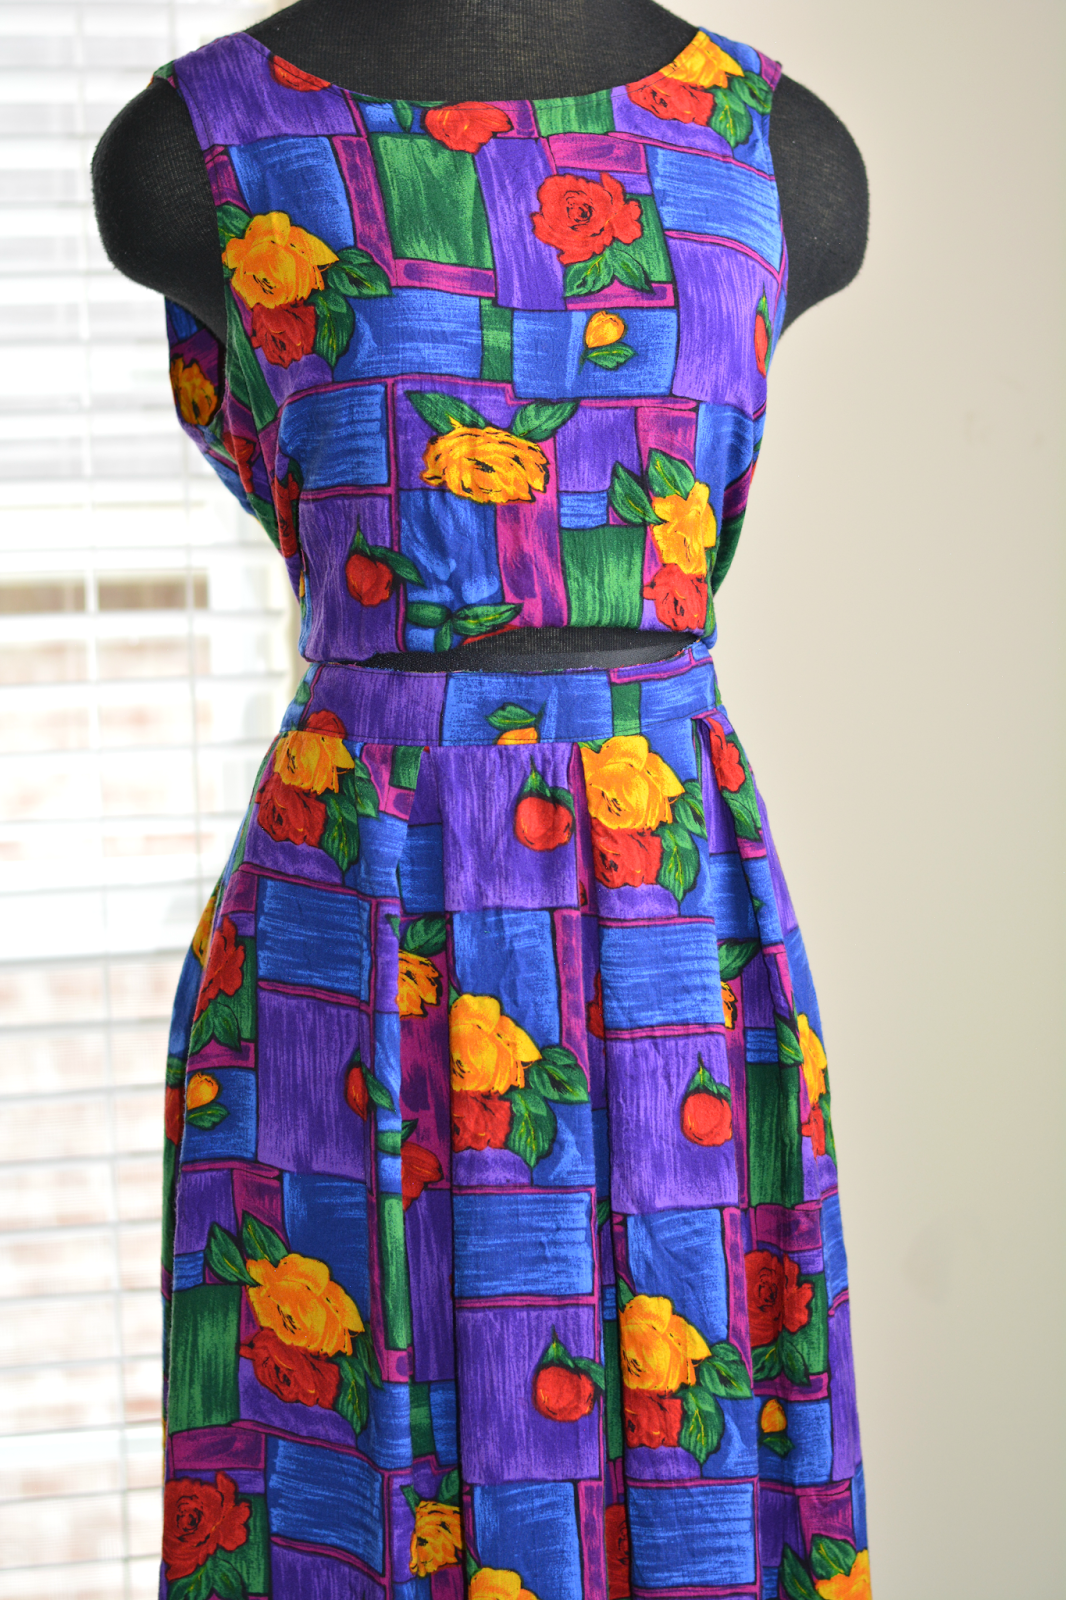 thrift store dress to skirt diy